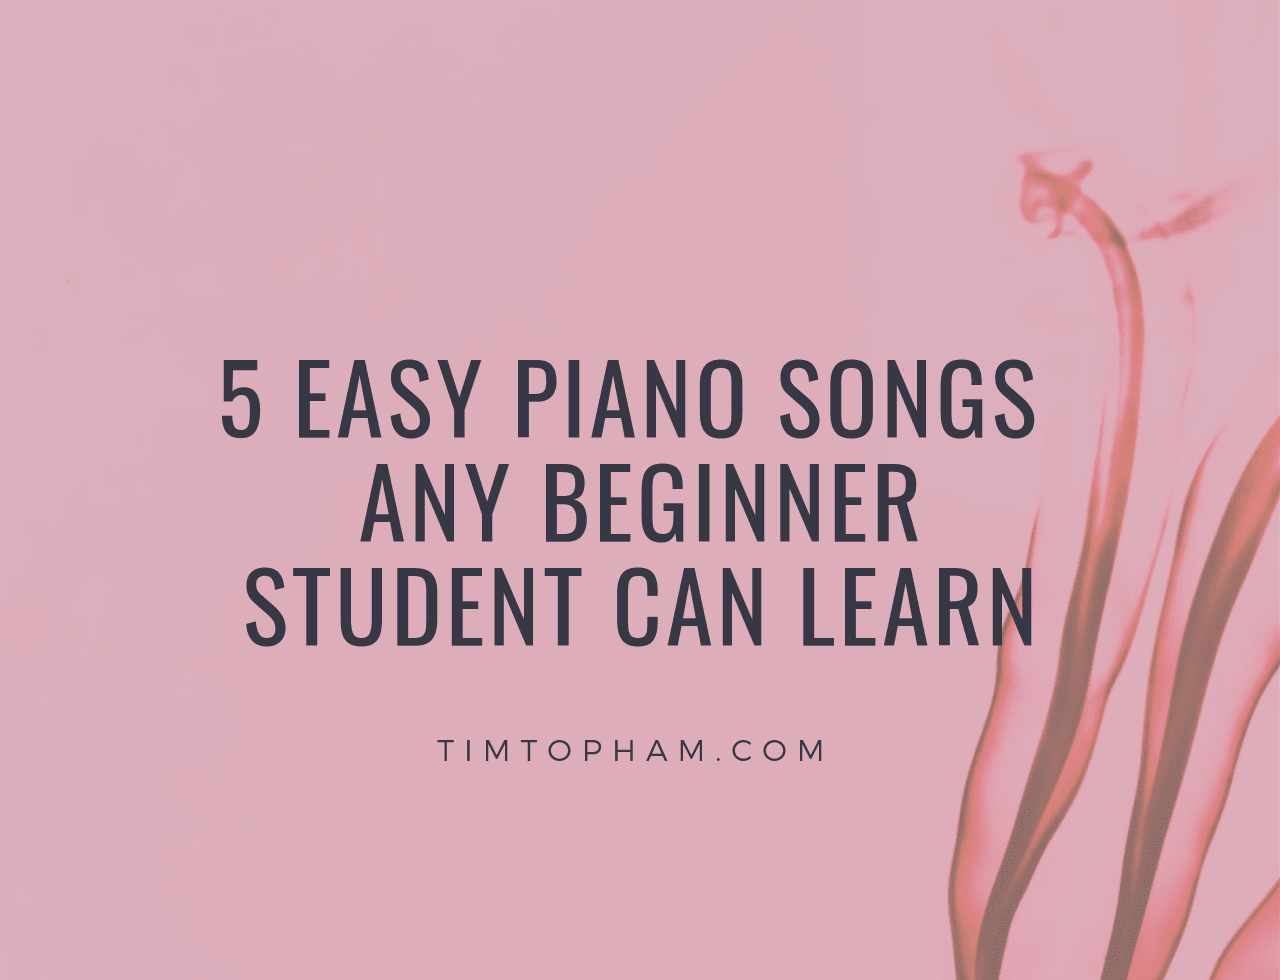 5 Easy Piano Songs any Beginner Student Can Learn - Top Music Co